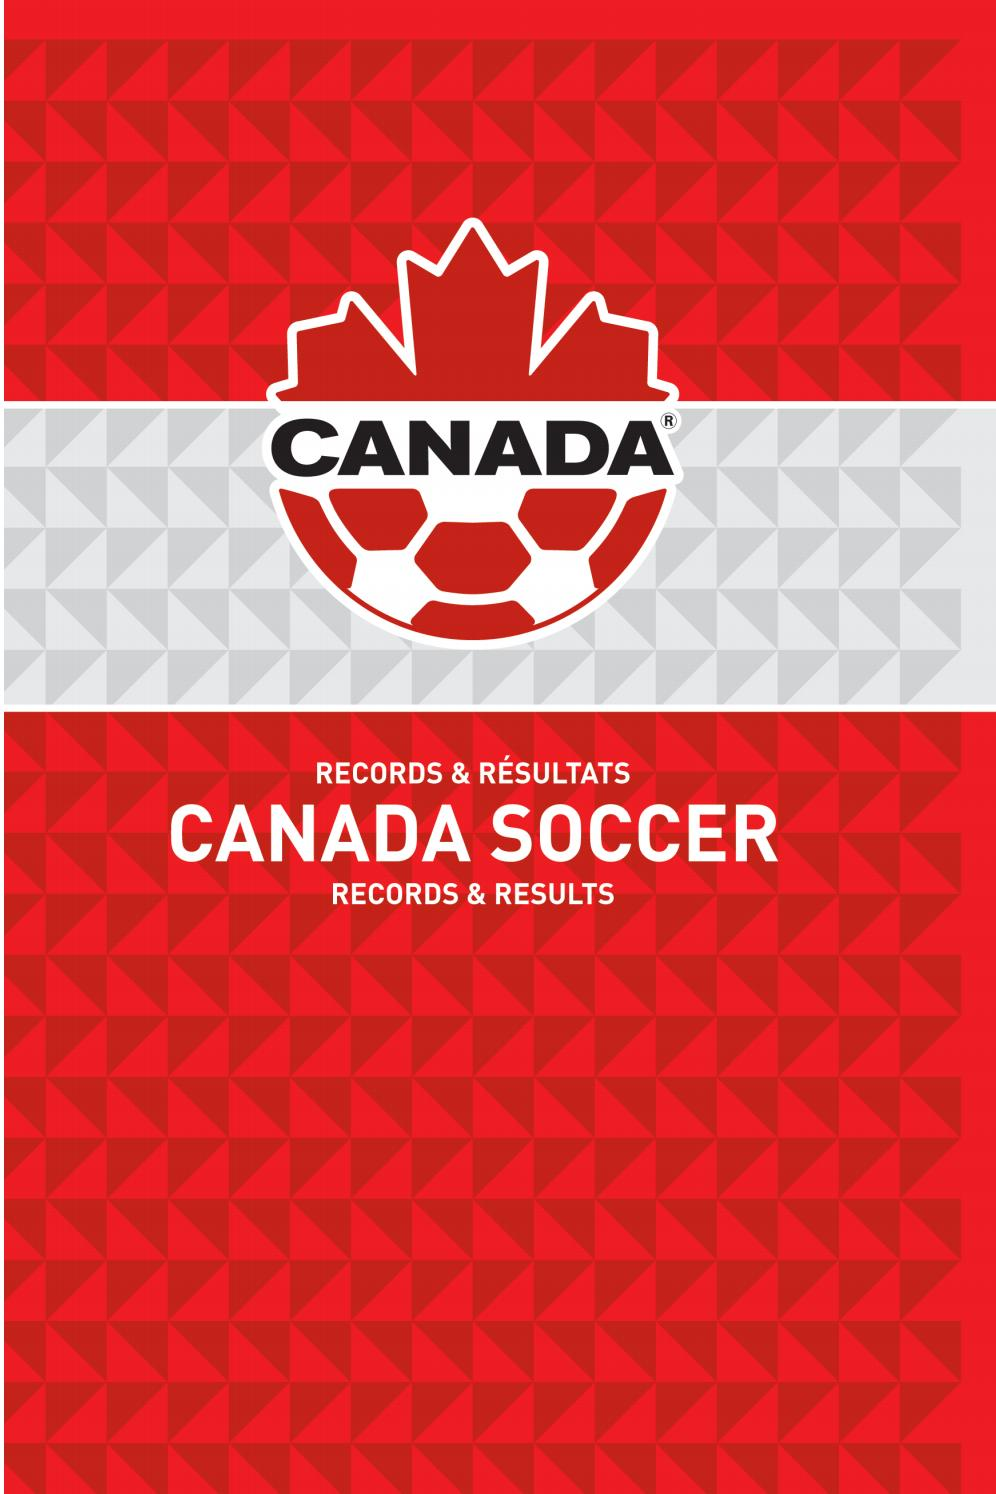 2019 Canada Soccer Records & Results by Canada Soccer - issuu